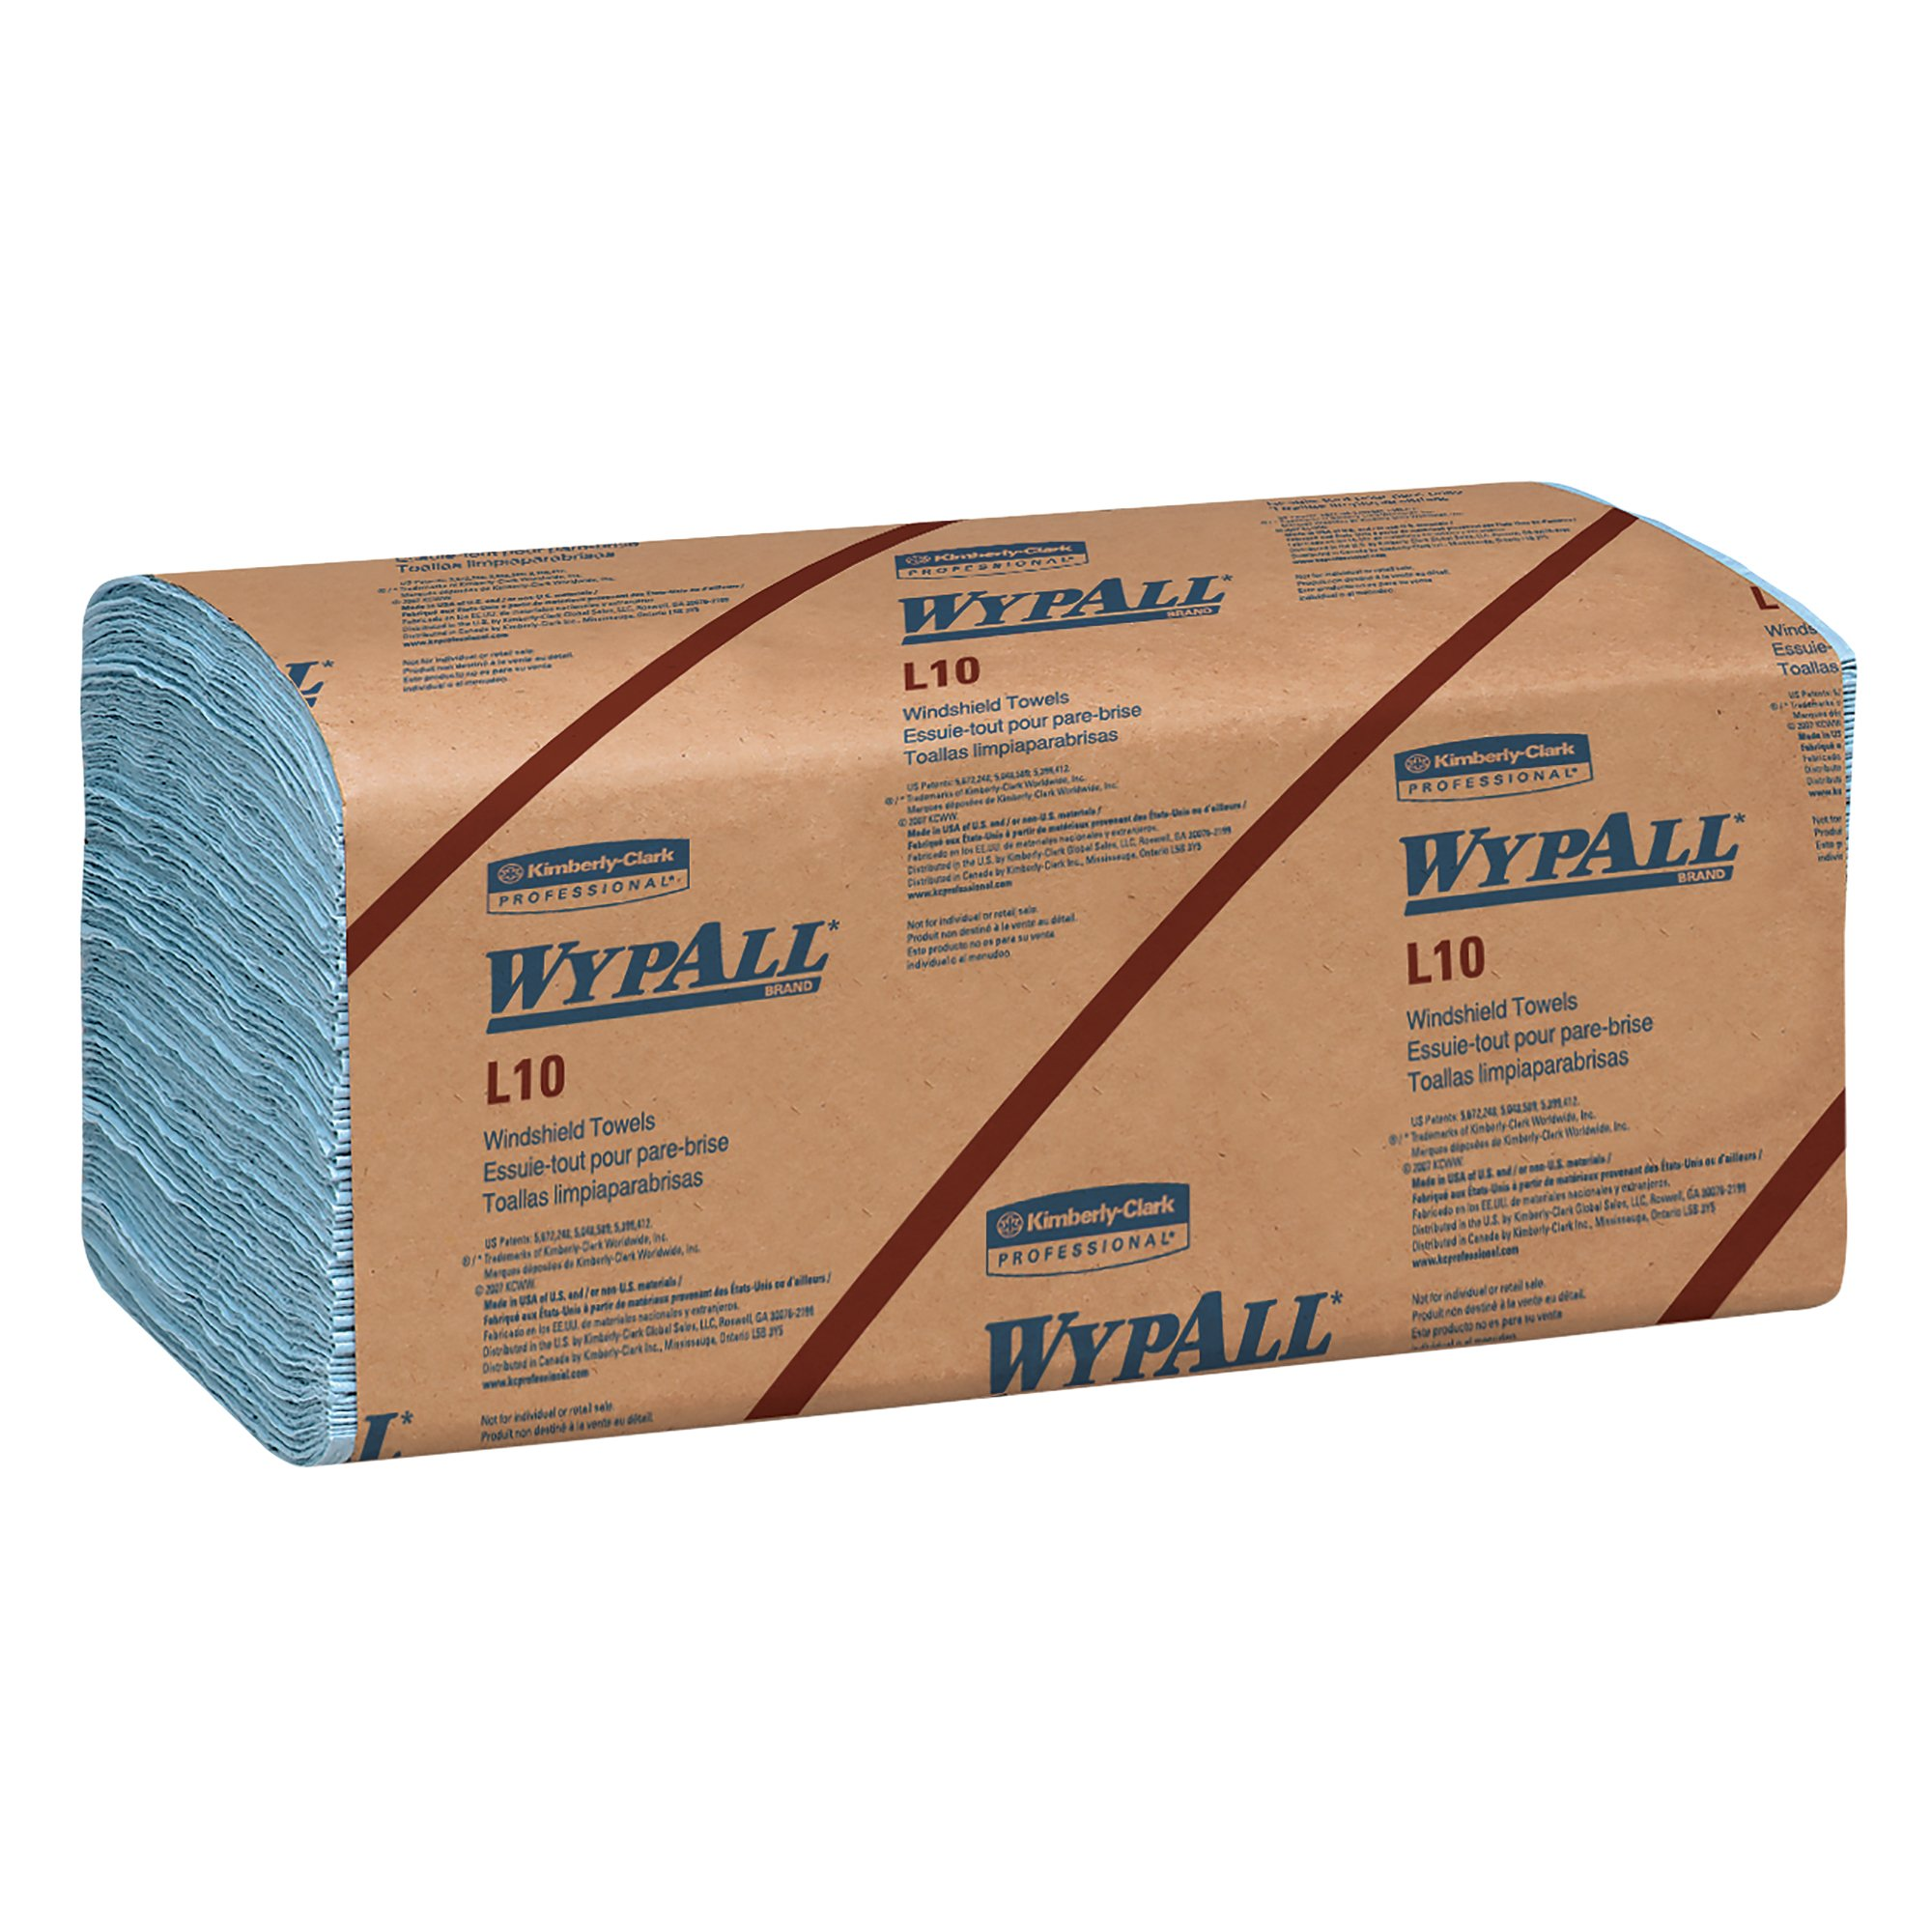 Wypall L10 Disposable Towels (05123), Windshield Wipe, 1-PLY, Banded, Blue, 12 Packs / Case, 200 Wipes / Pack, 2,400 Sheets / Case